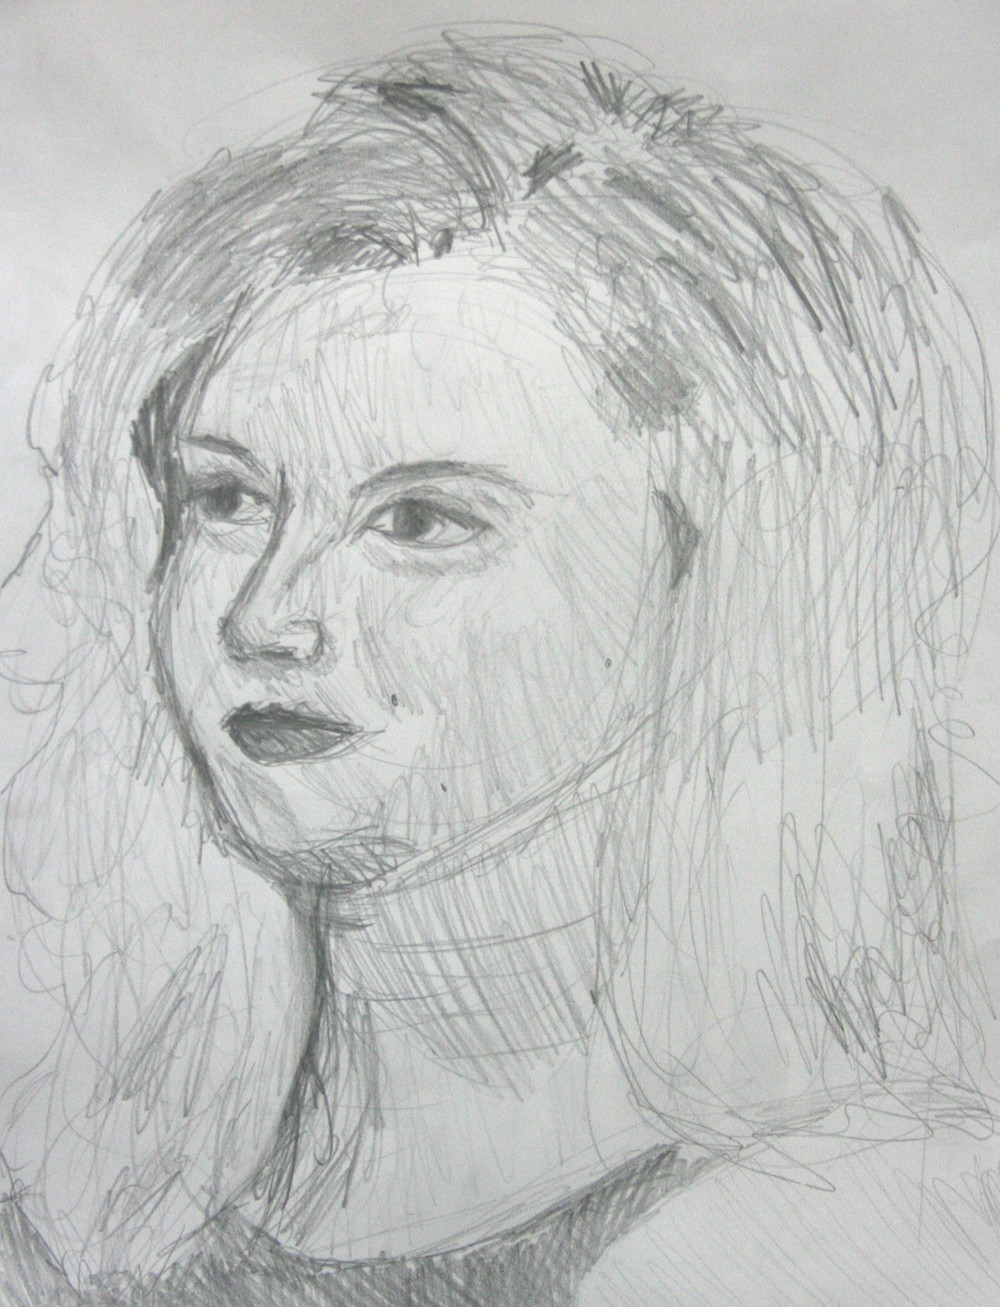 Abigail Murray did this 45 minute drawing.